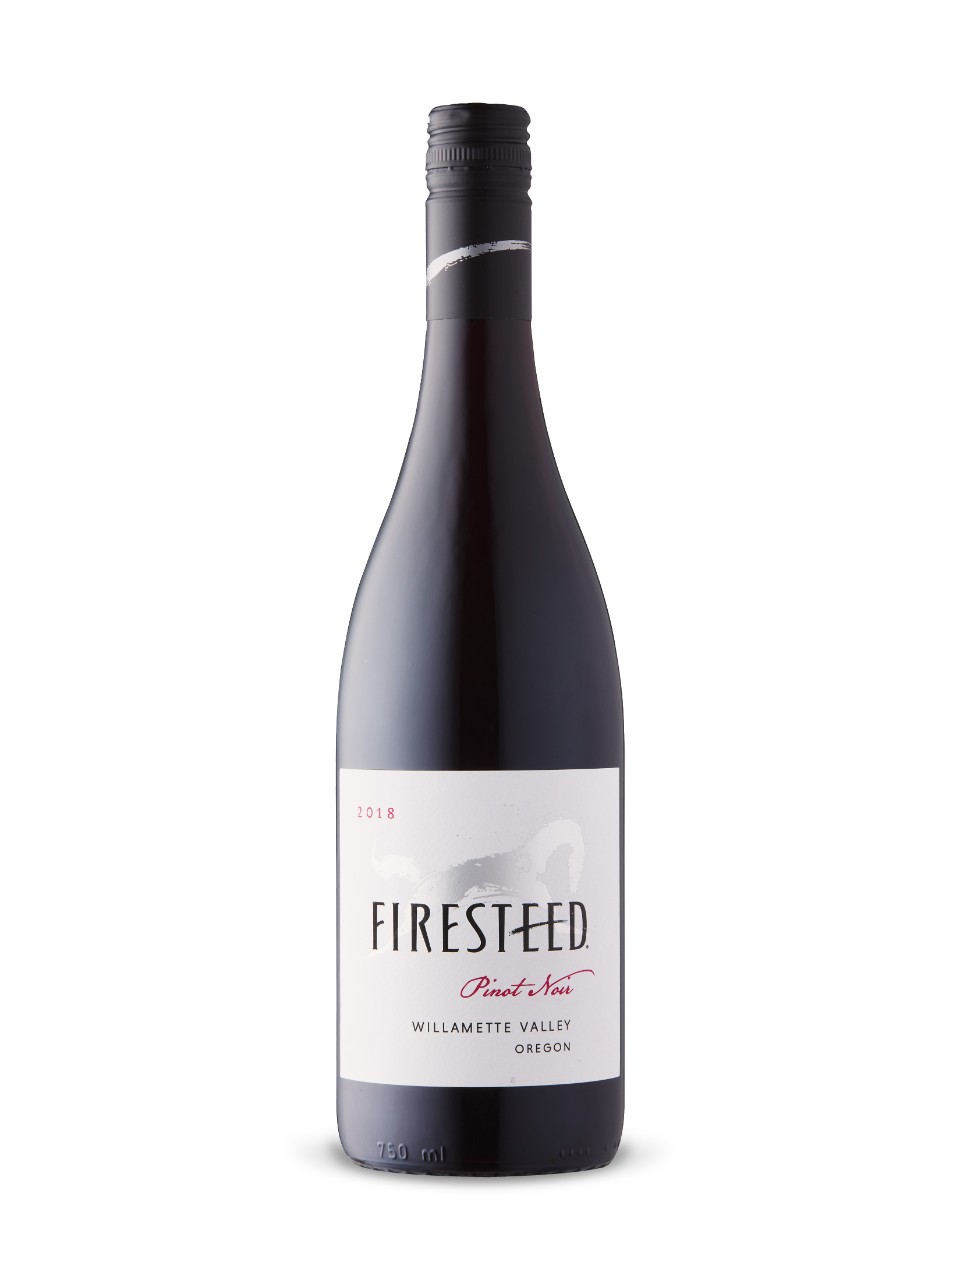 Firesteed Pinot Noir 2018 from LCBO